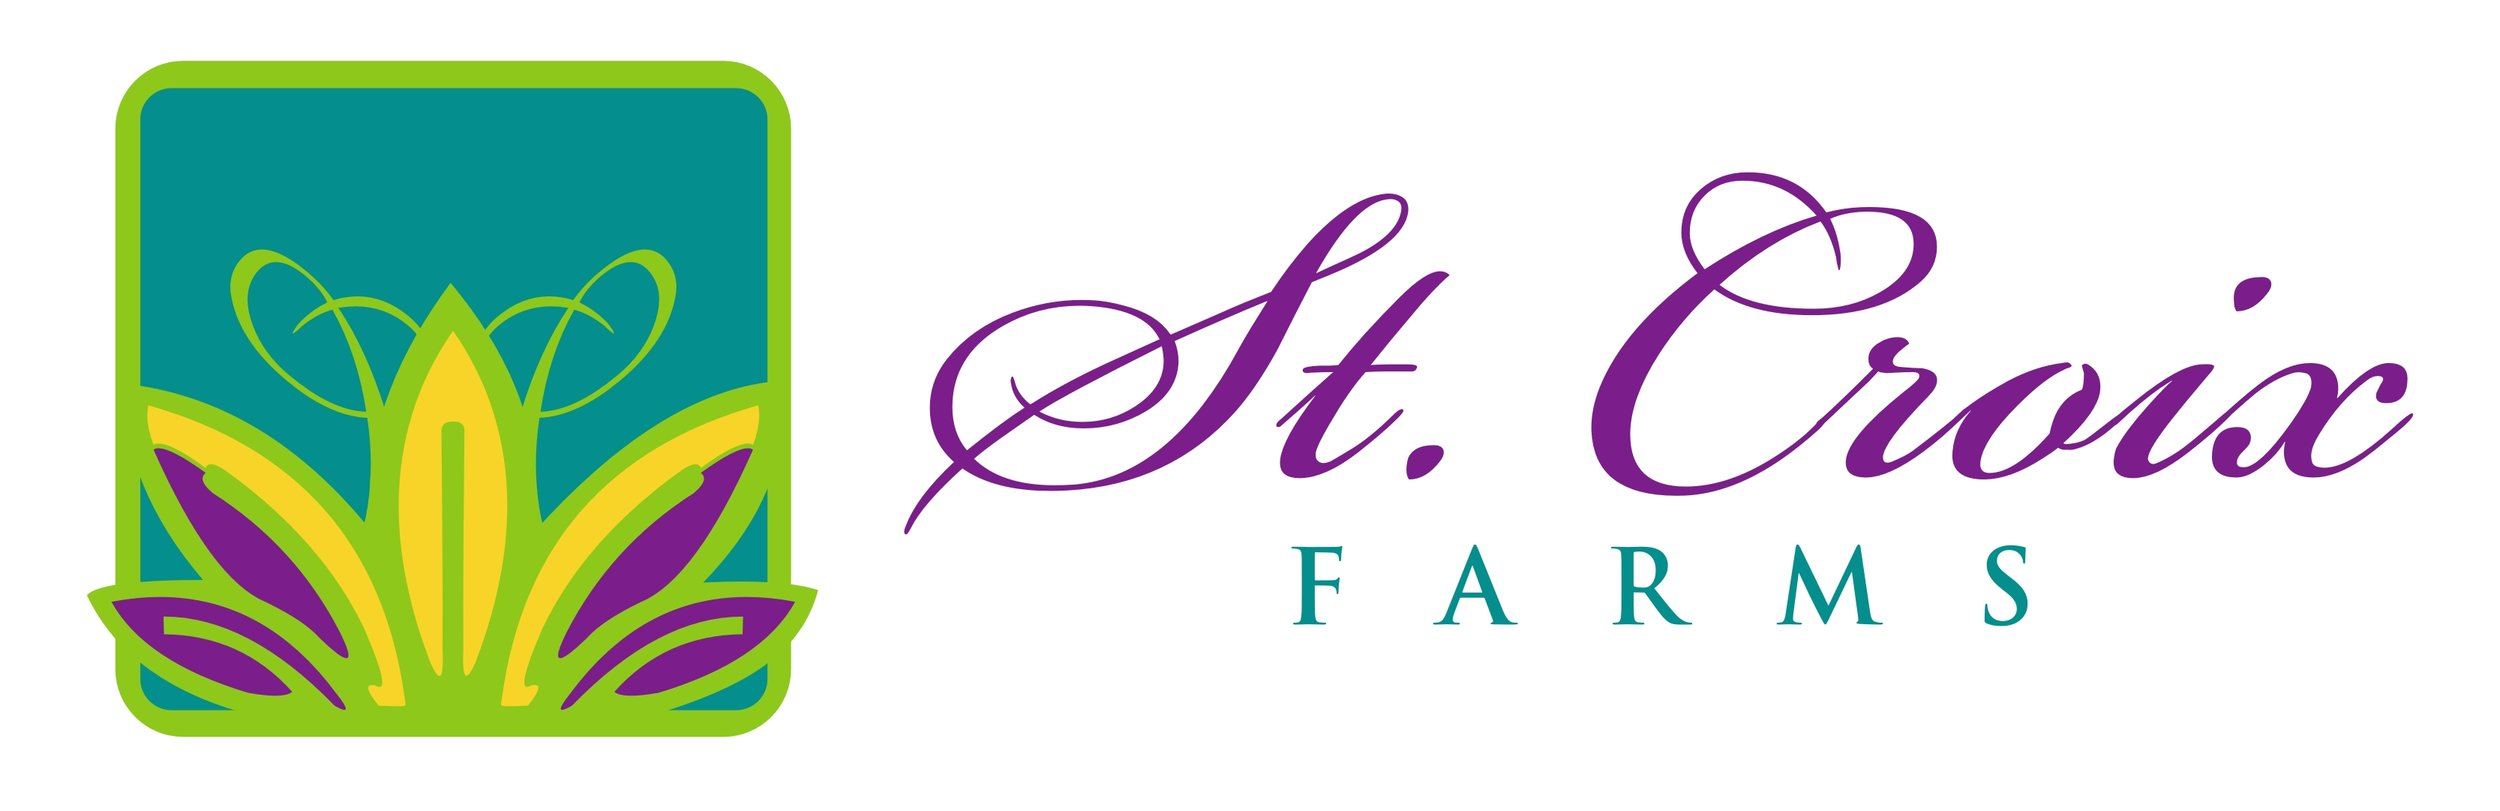 St. Croix Farms logo on white background.jpg